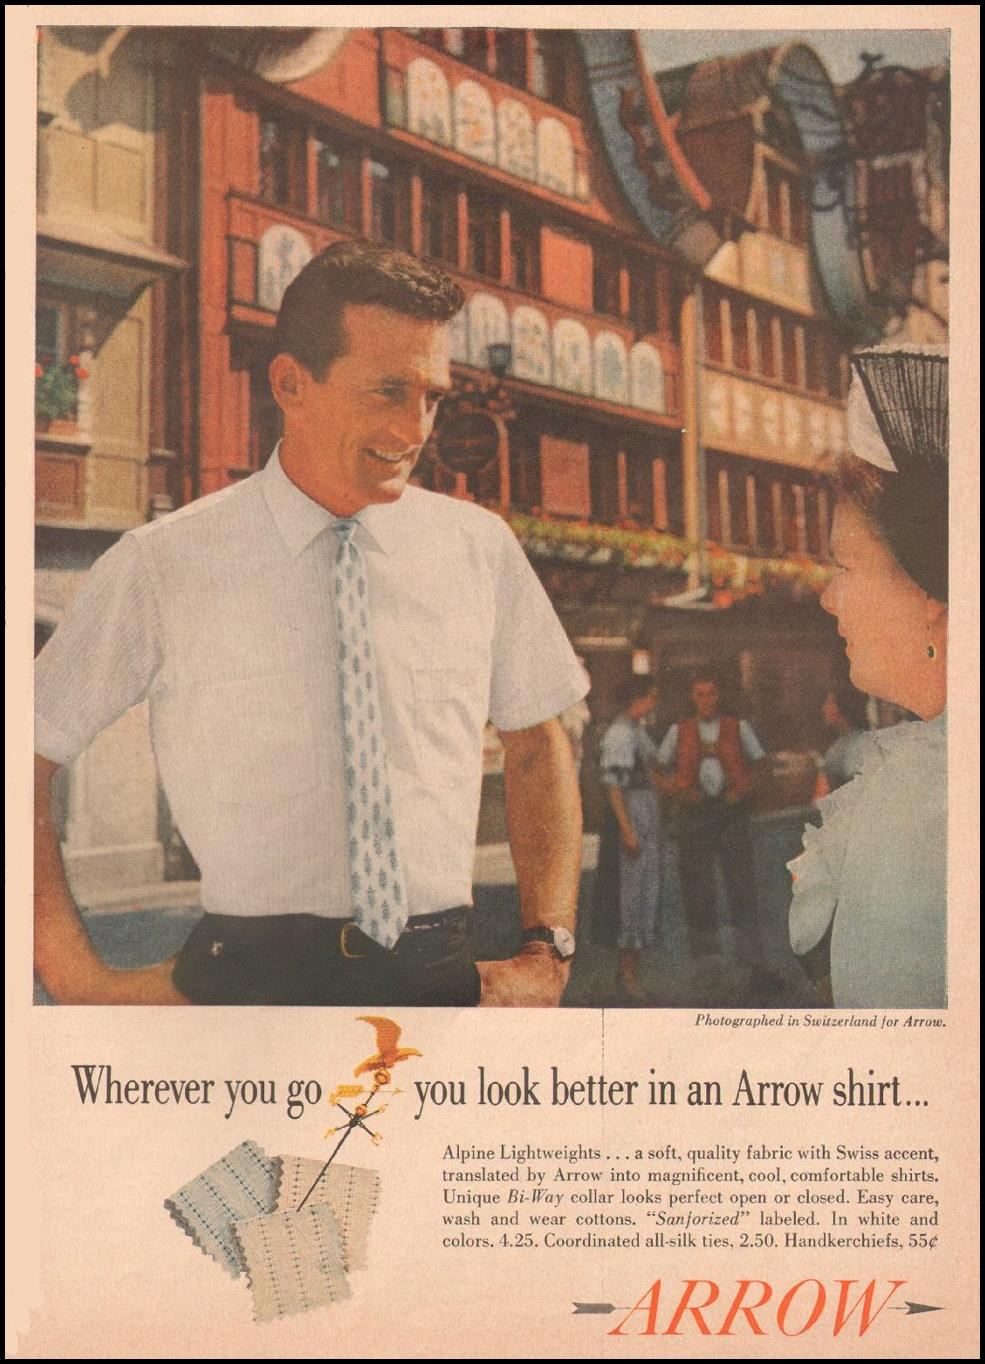 ARROW ALPINE LIGHTWEIGHT SHIRTS SATURDAY EVENING POST 06/11/1960 p. 131